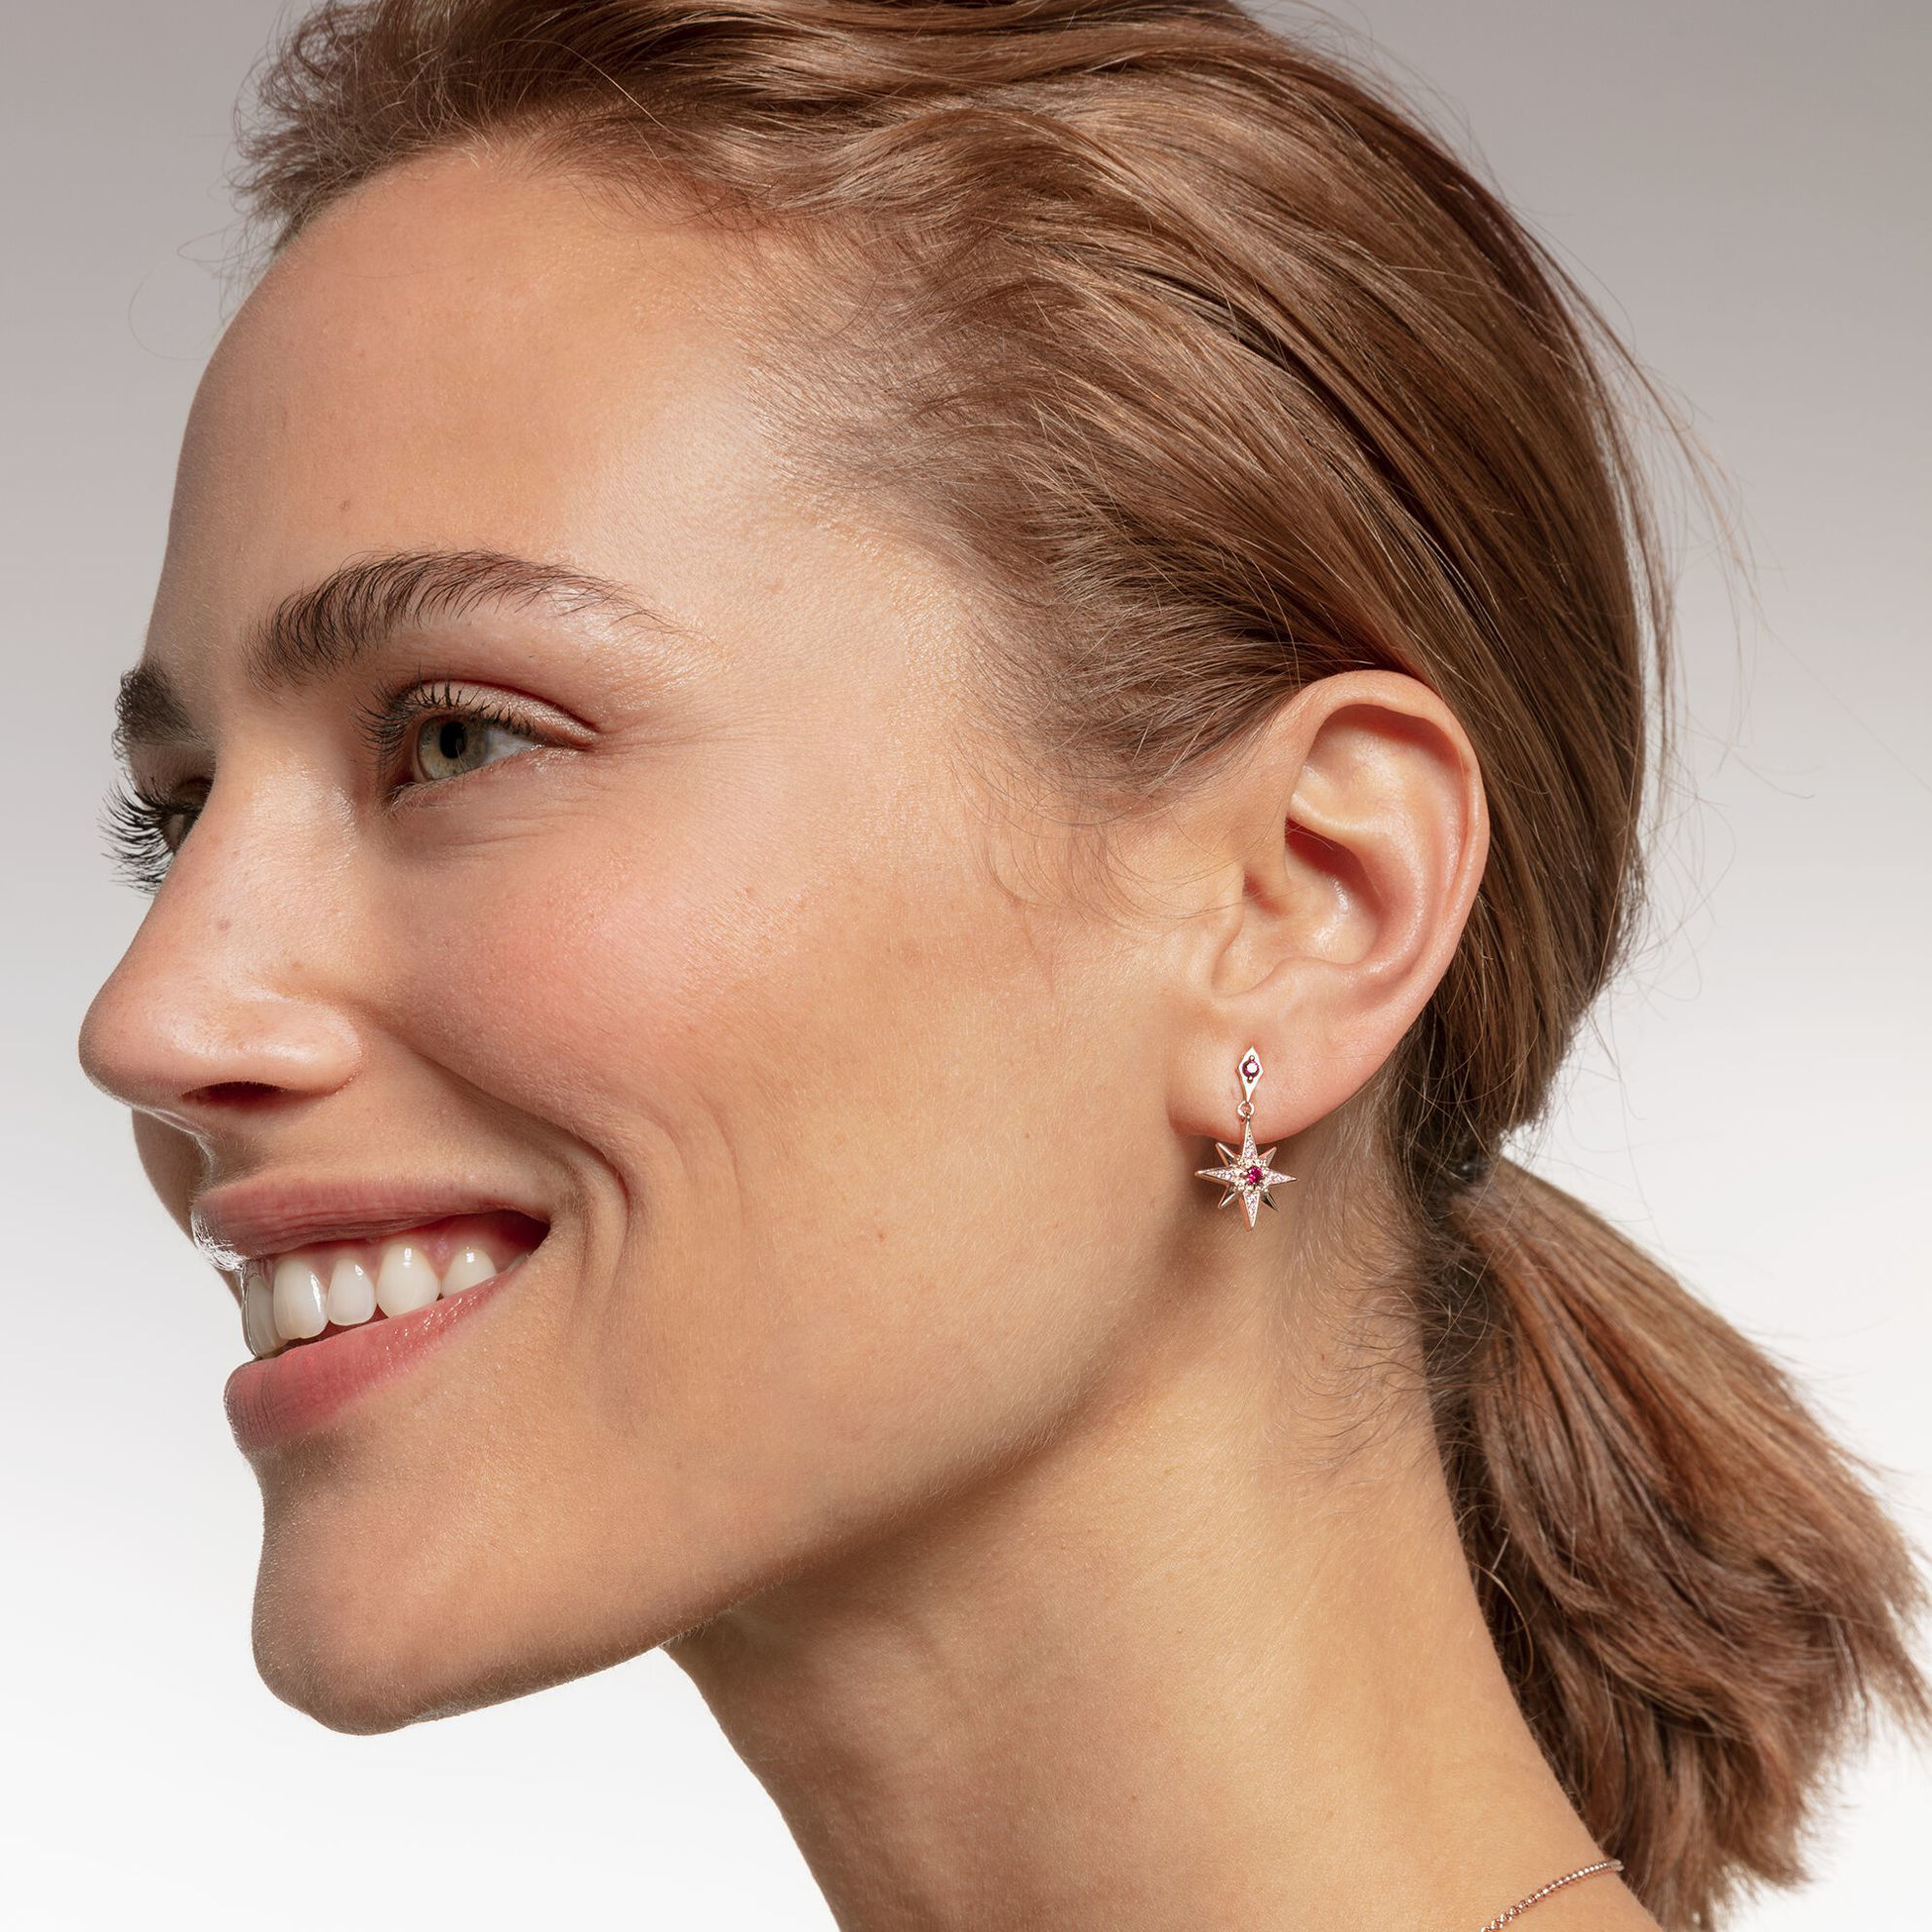 Picture of Rose Gold Star Earrings